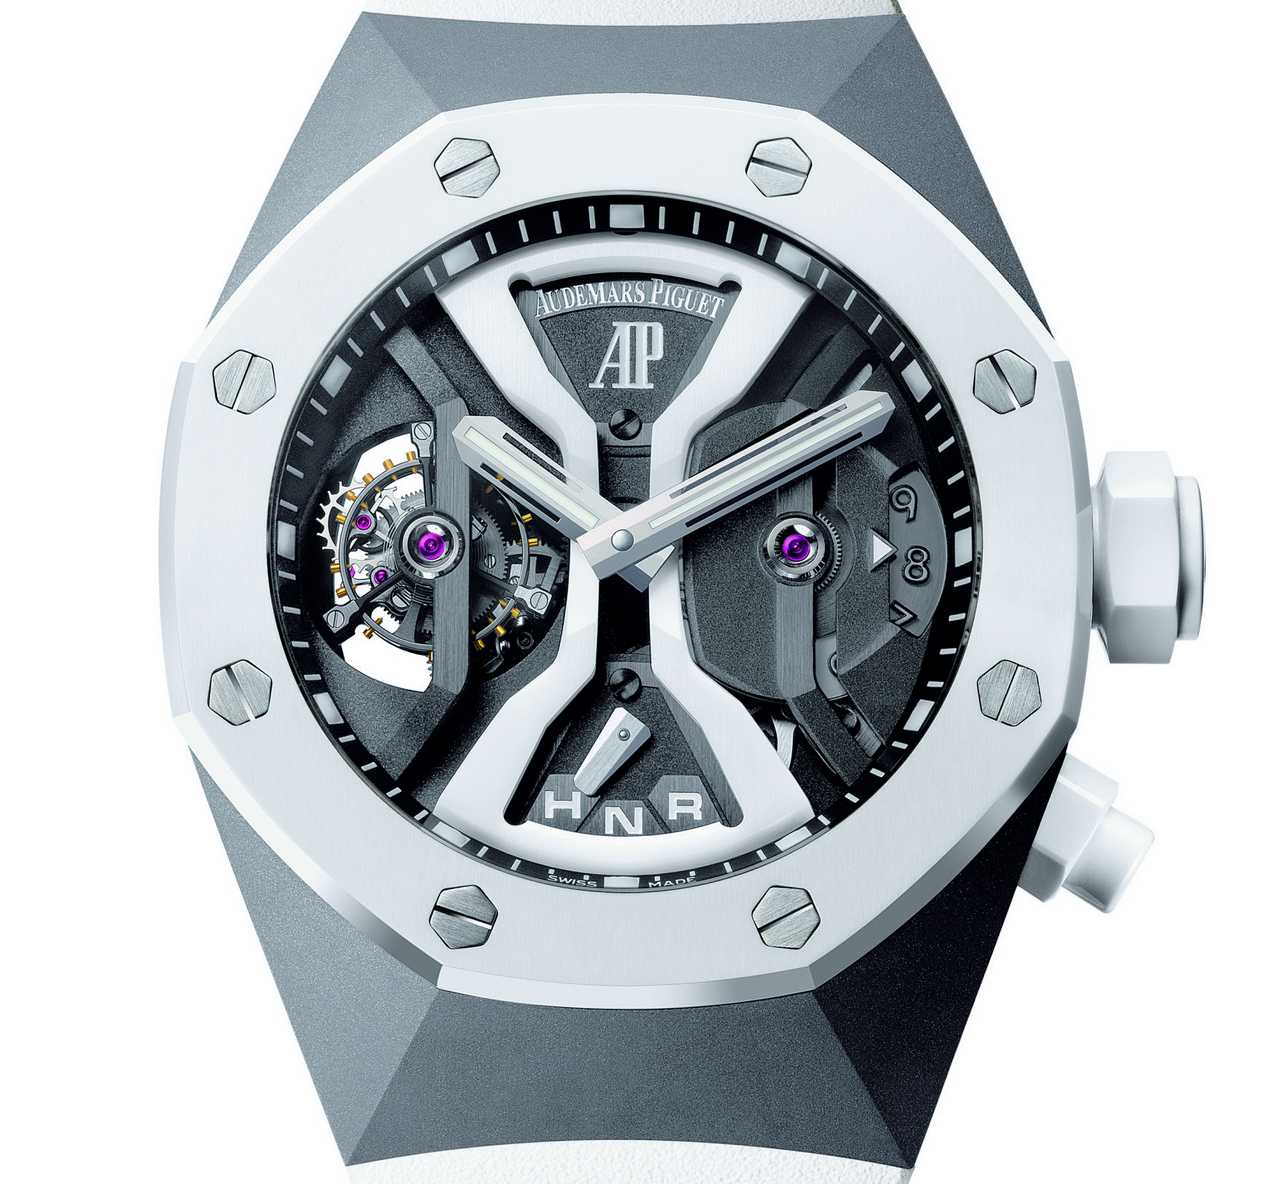 anteprima-sihh-2014-audemars-piguet-royal-oak-concept-gmt-tourbillon-0-100_2